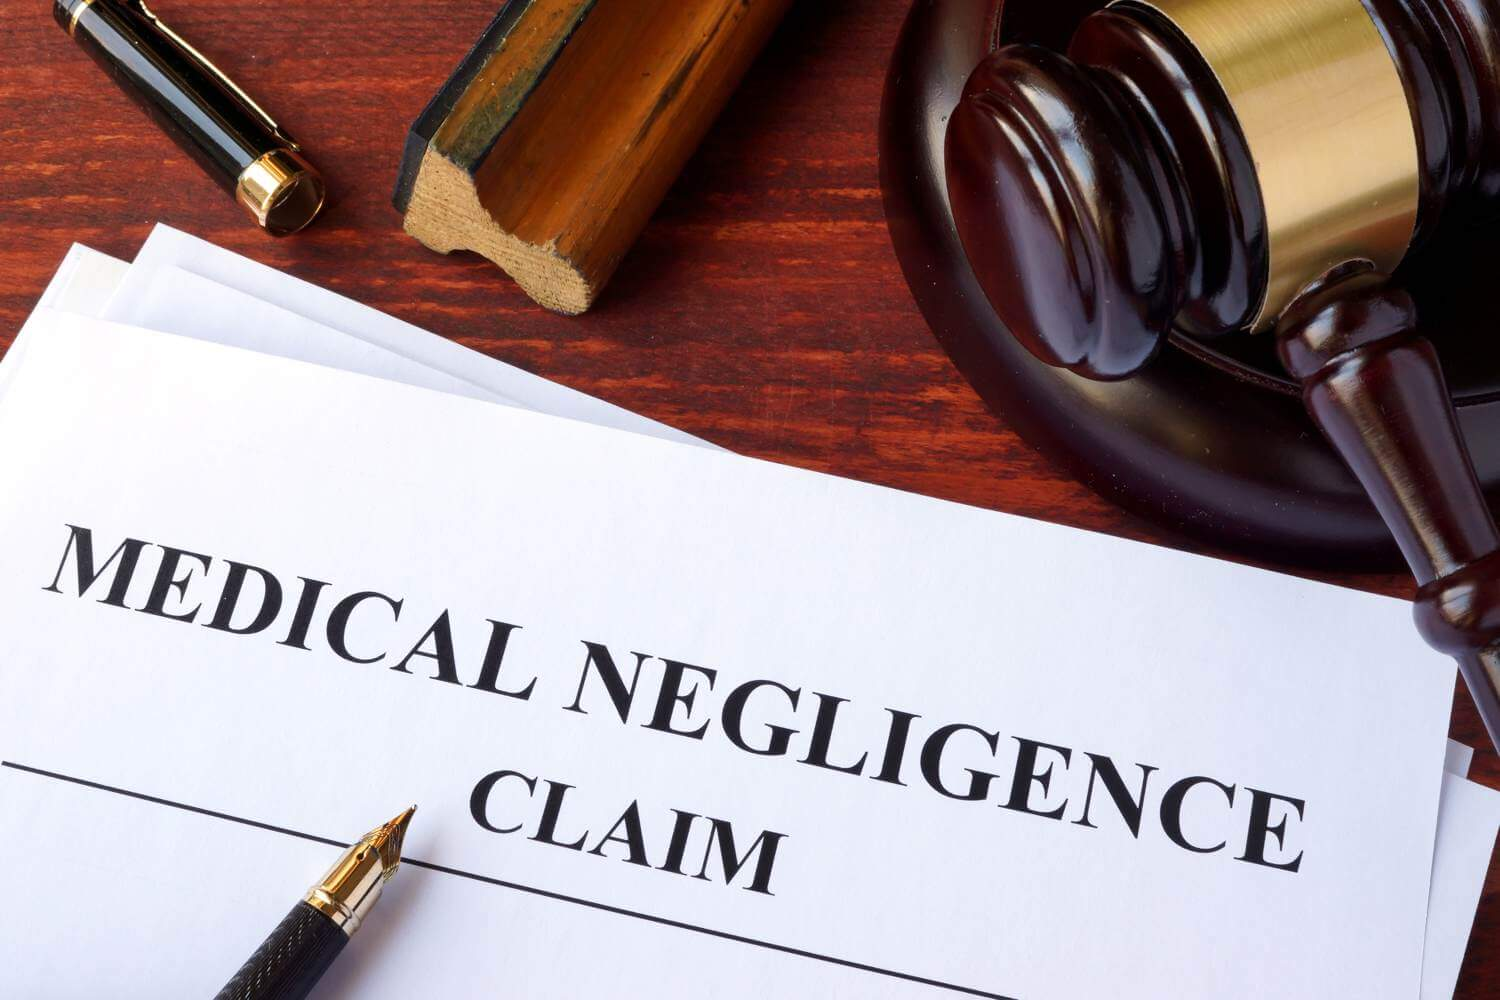 Common types of Medical Negligence